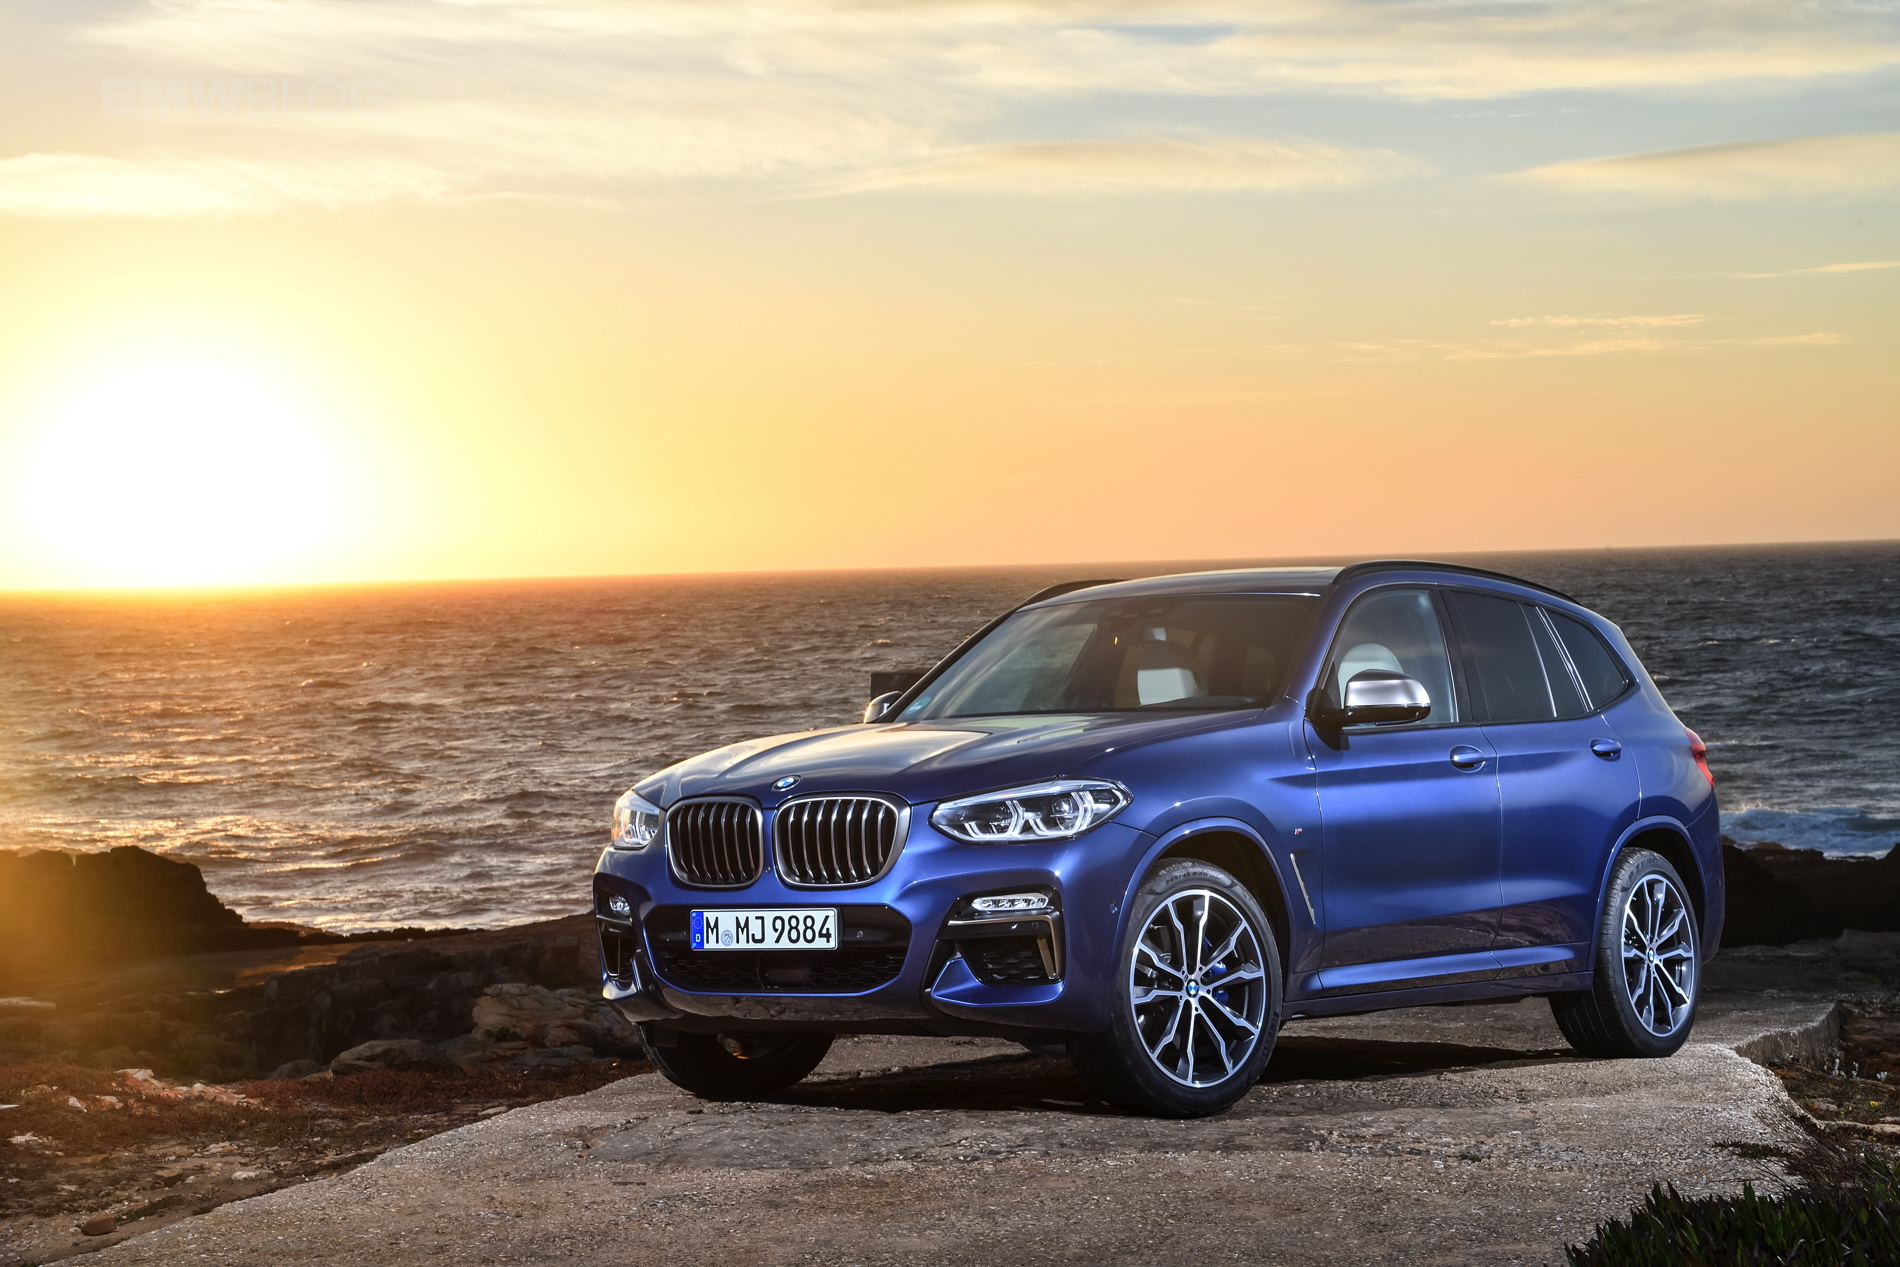 bmw x3 m40i pricing kicks off at just under 100 000 in australia bmwfiend. Black Bedroom Furniture Sets. Home Design Ideas